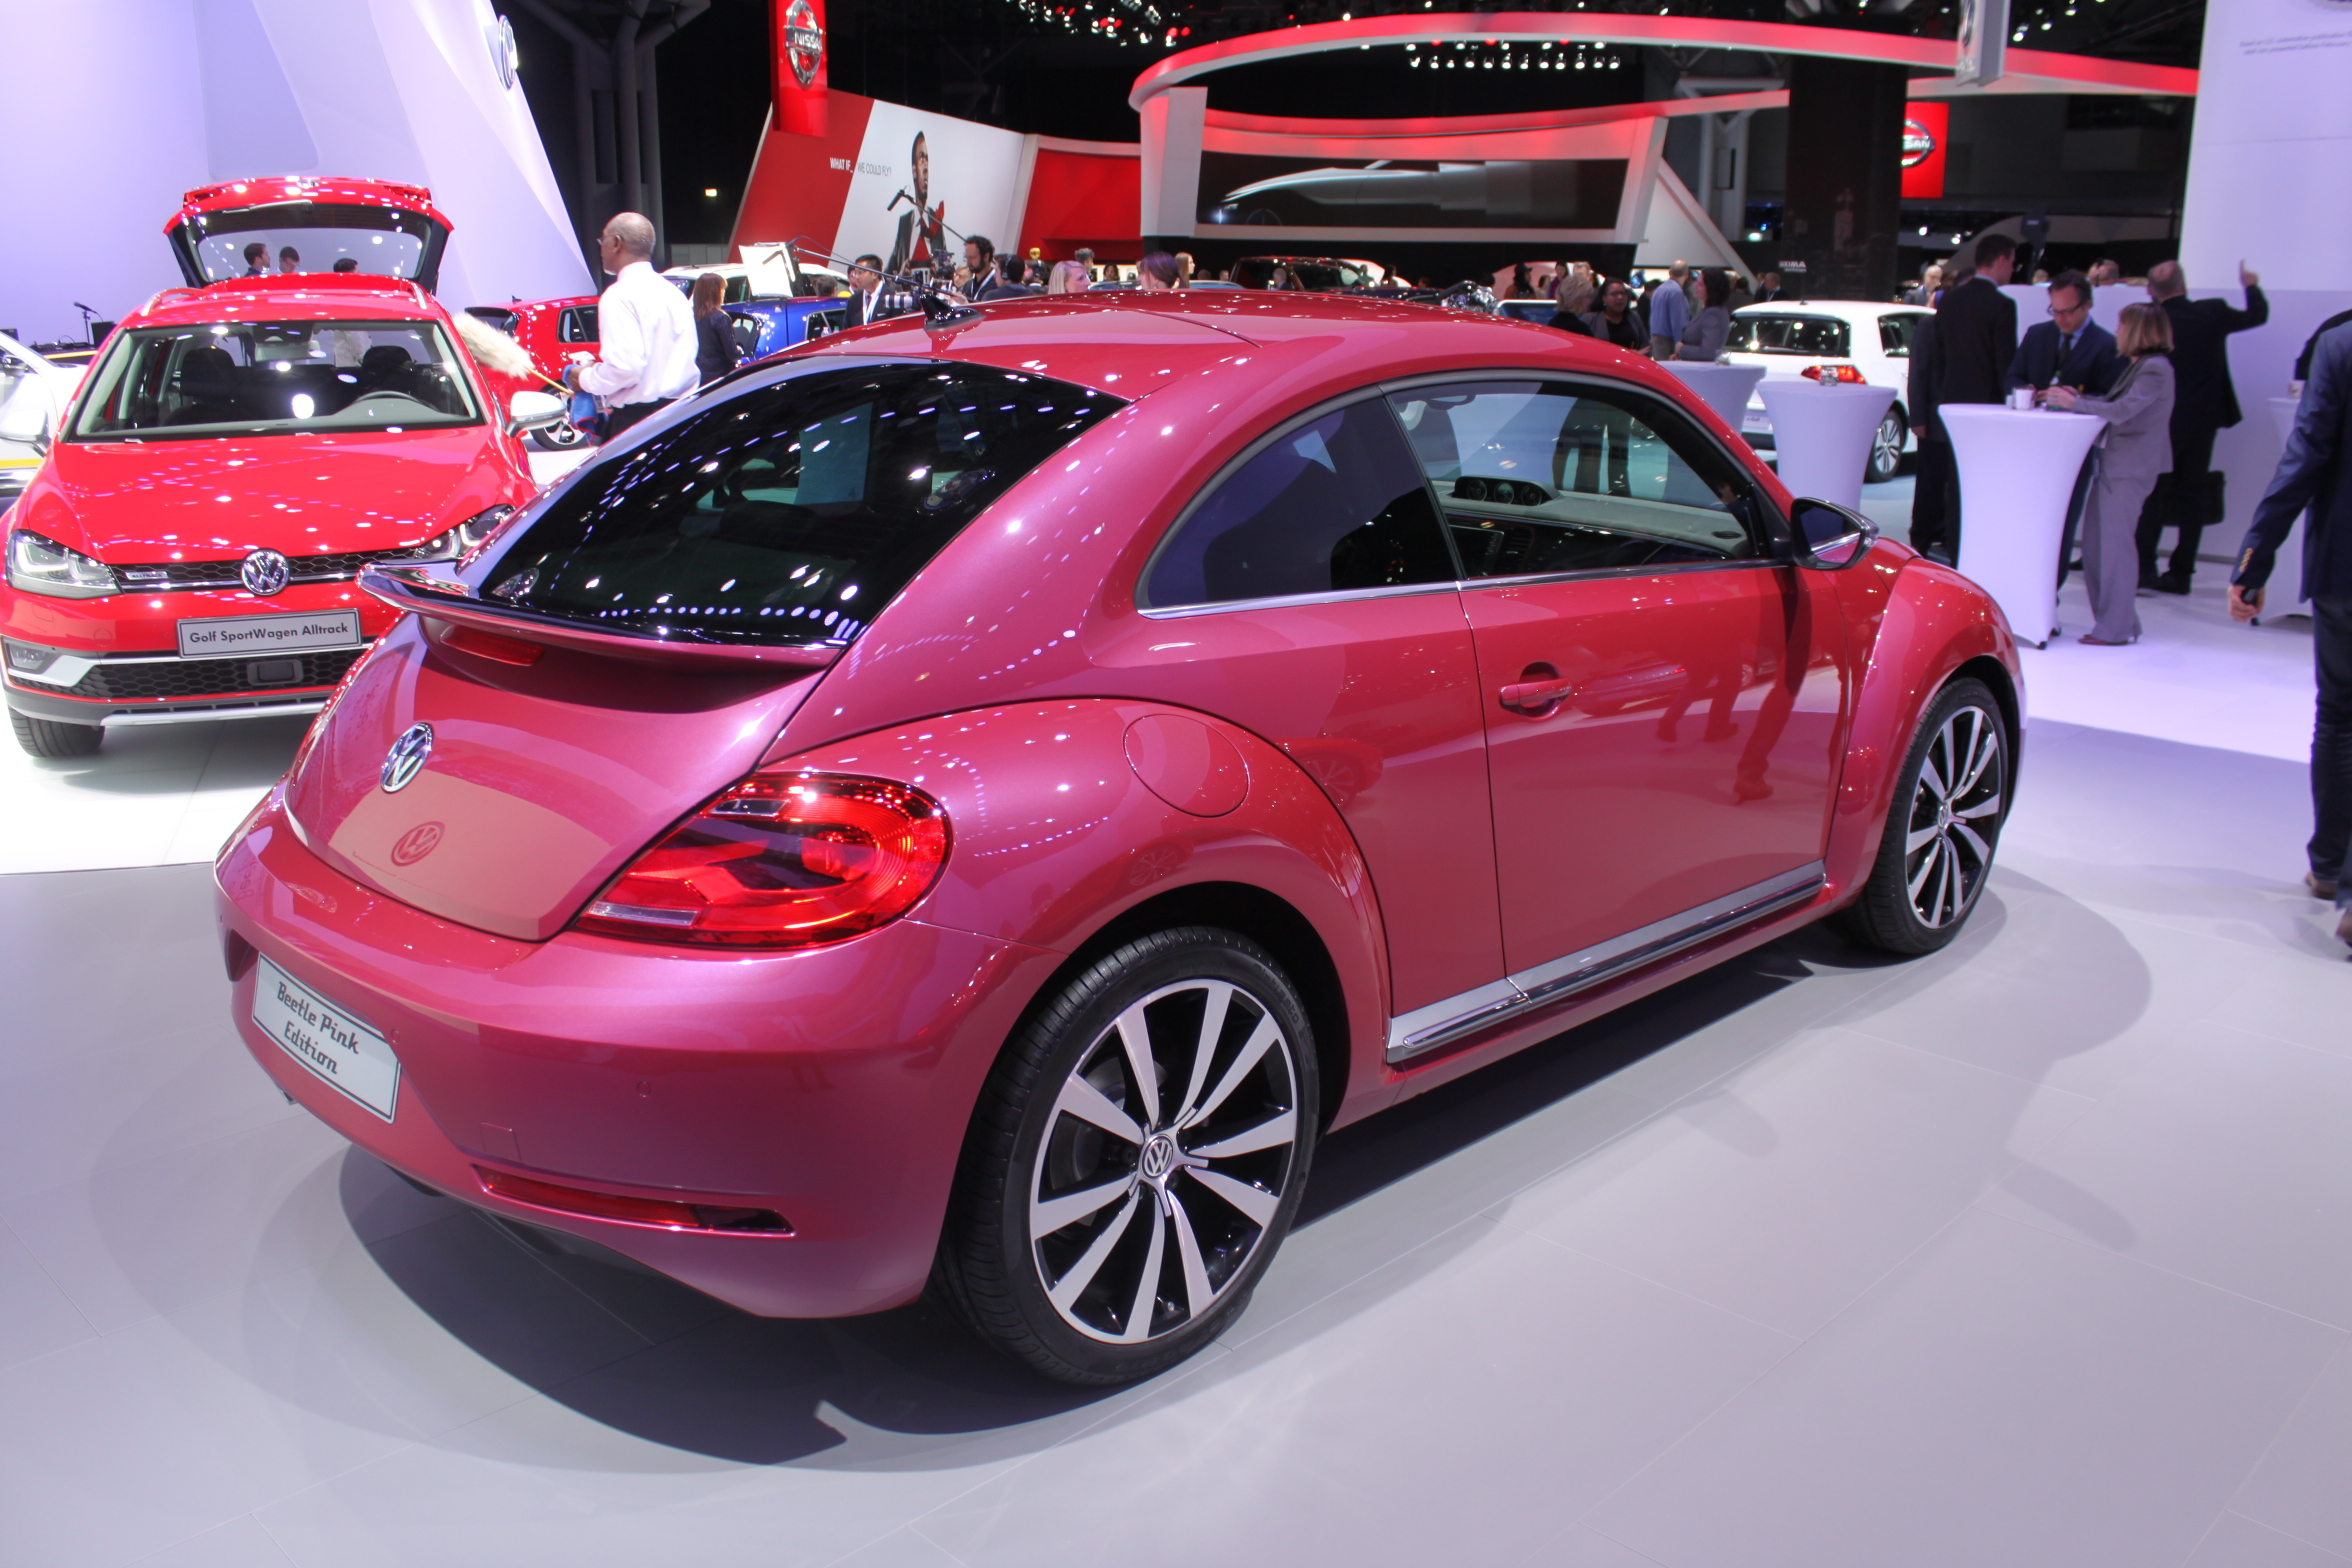 of v images volkswagen vw edition hd cars concept wallpaper concepts pink beetle front